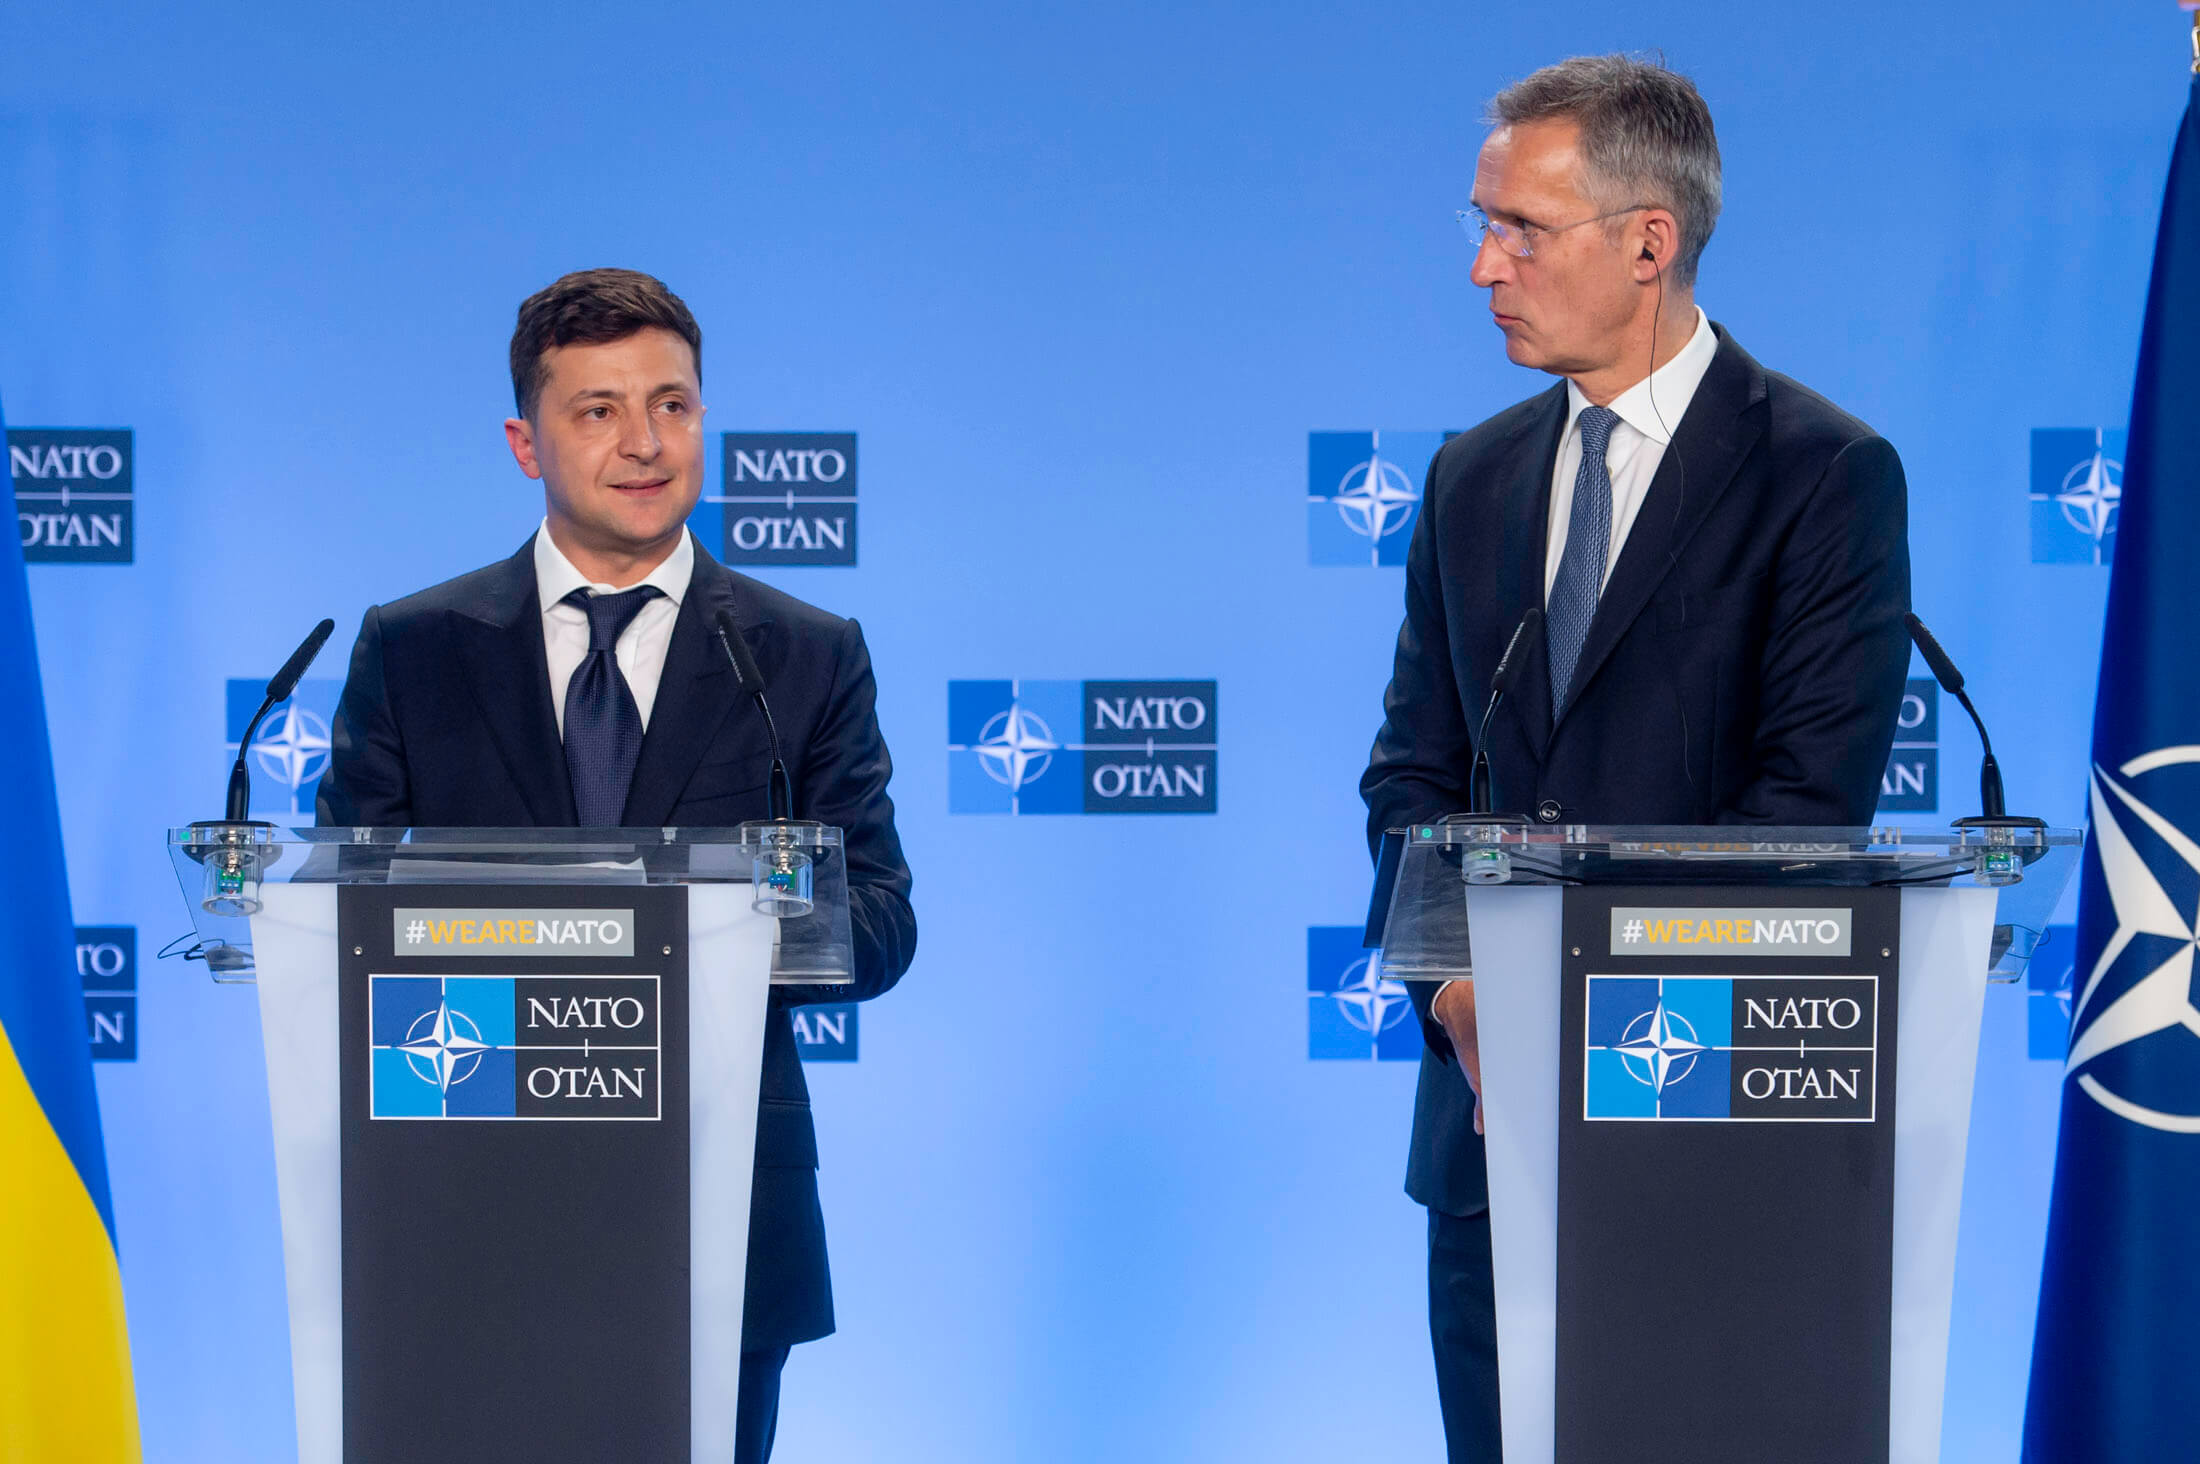 Klijn-foto-Joint press point by NATO Secretary General Jens Stoltenberg and the President of Ukraine, Volodymyr Zelenskyy in June 2019. © NATO